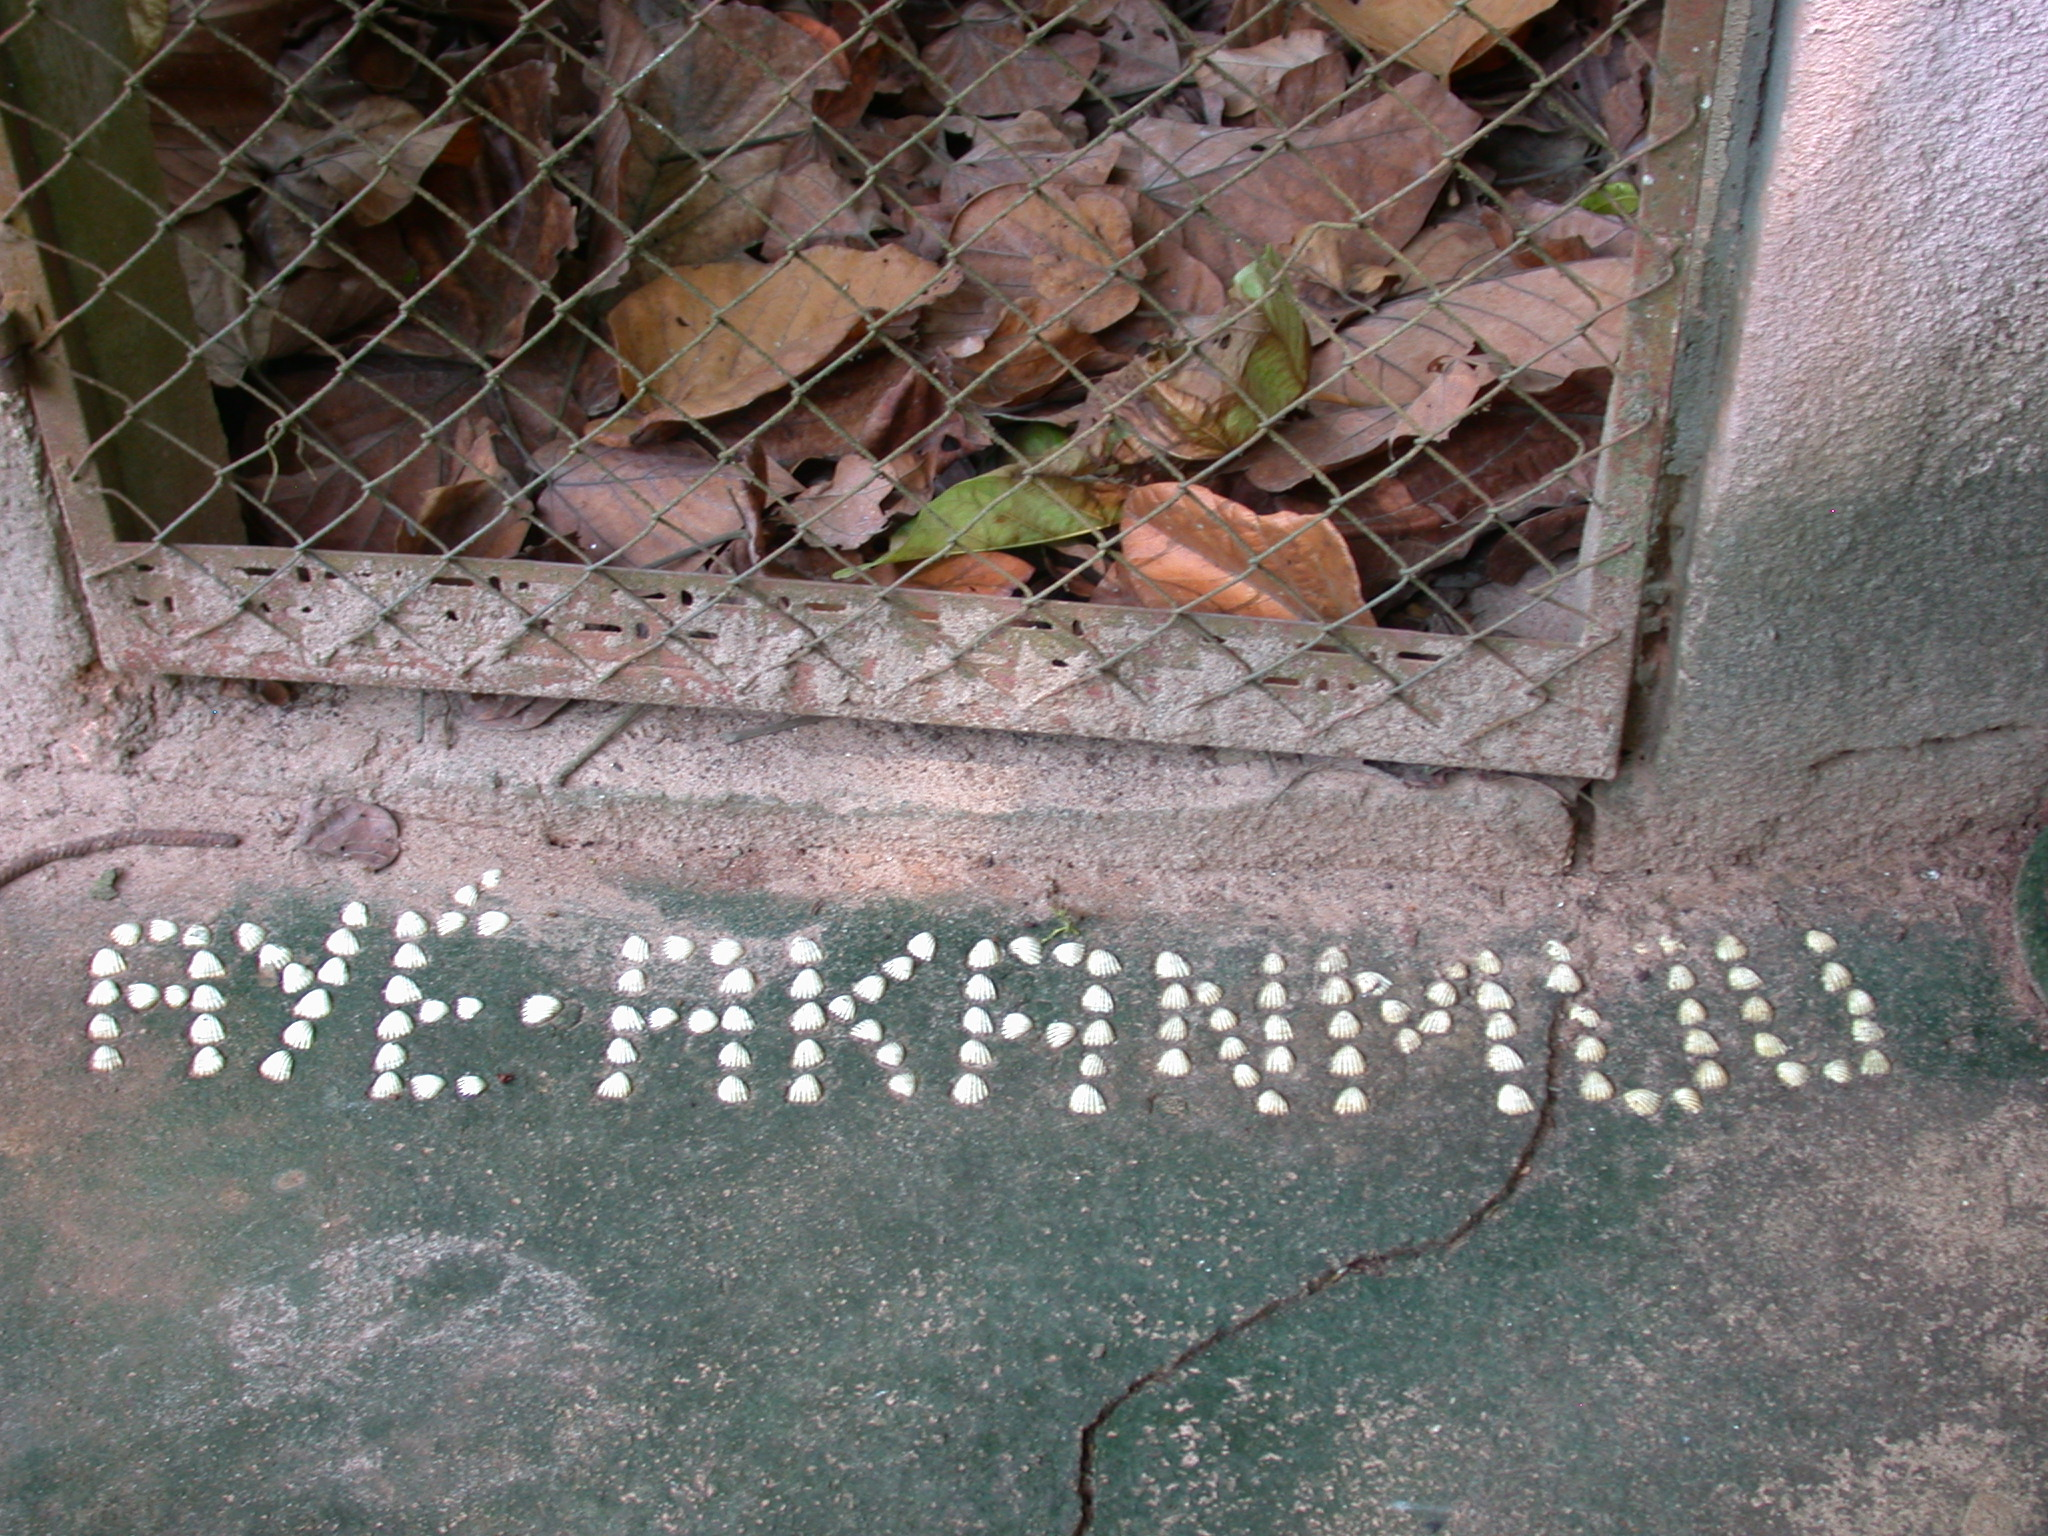 Aye-Akanmuu Label at Python Enclosure, Kpasse Sacred Forest, Ouidah, Benin